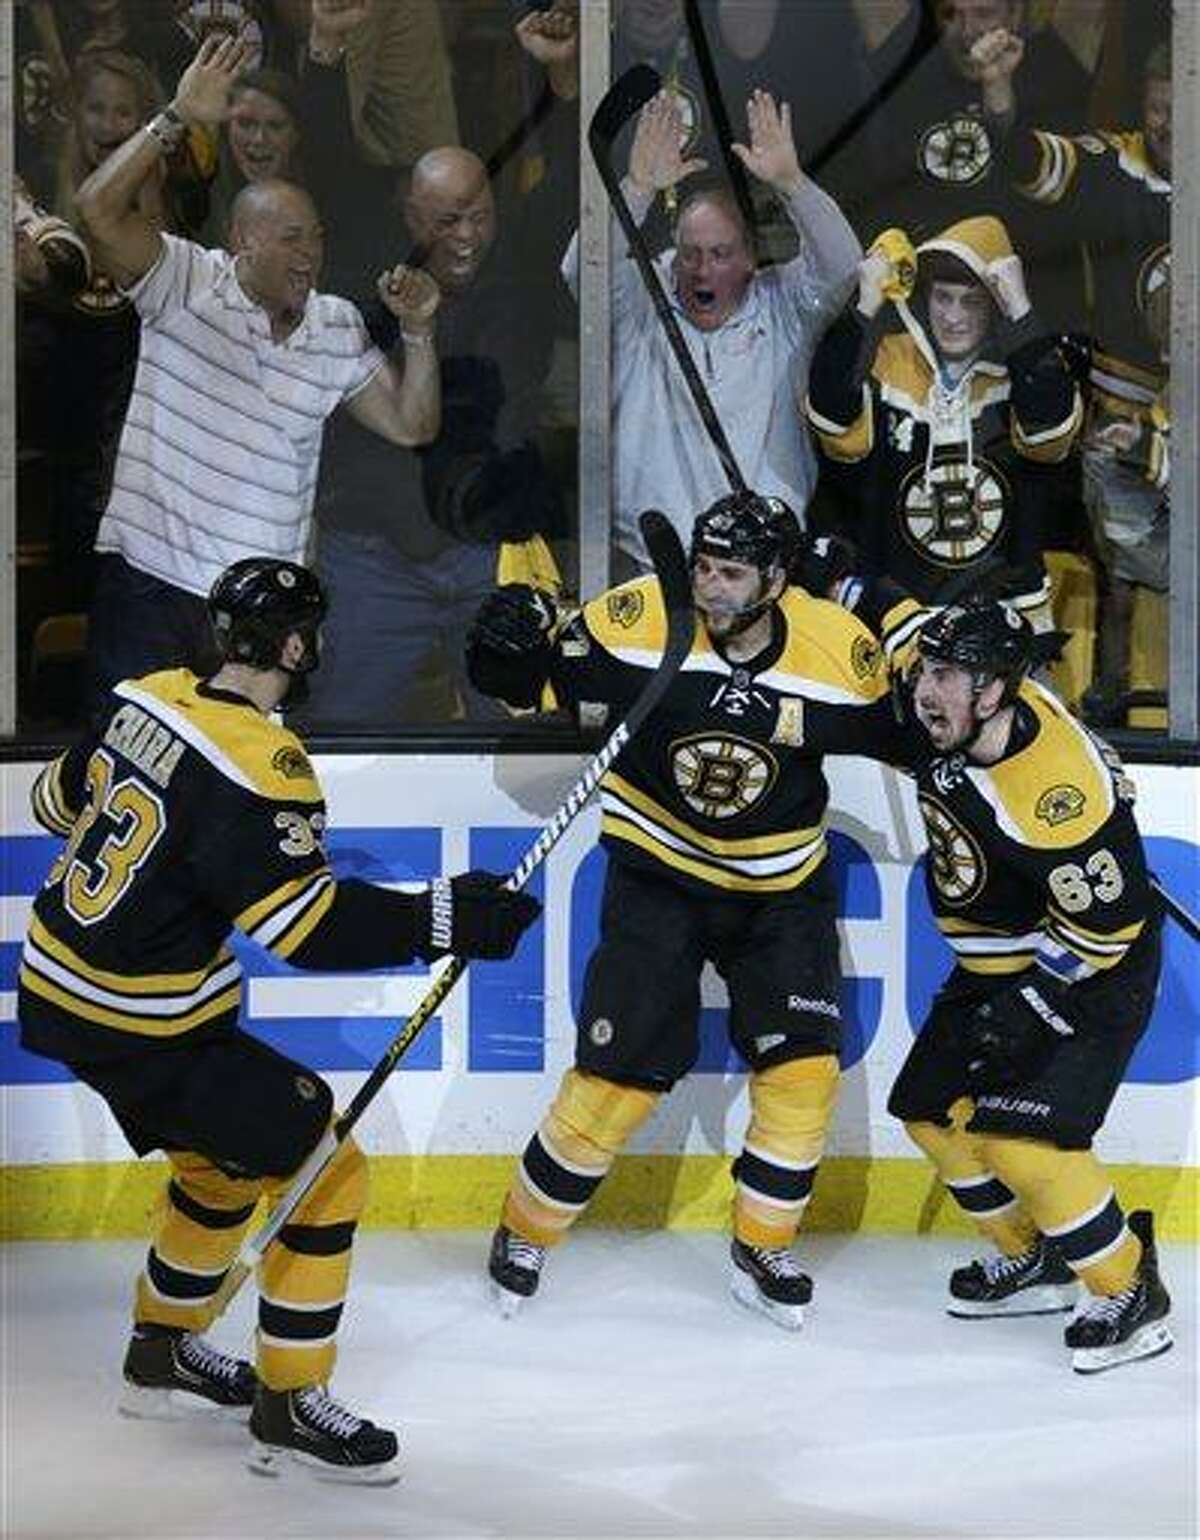 Boston Bruins center Patrice Bergeron, center, is congratulated by teammates Brad Marchand, right, and Zdeno Chara, left, after his game-winning goal against the Pittsburgh Penguins during the second overtime period in Game 3 of the NHL hockey Stanley Cup playoffs Eastern Conference finals, in Boston, Thursday, June 6, 2013. The Bruins won 2-1 and take a 3-0 lead in the series. (AP Photo/Charles Krupa)